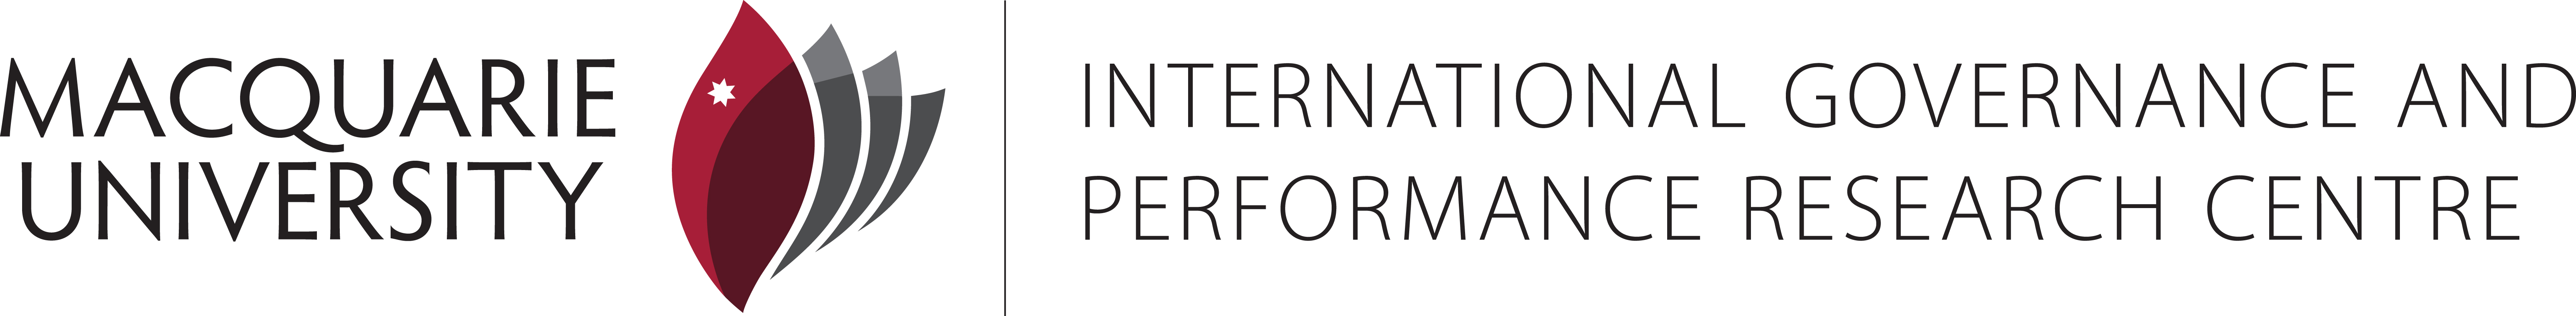 Macquarie University - International Governance and Performance Research Centre